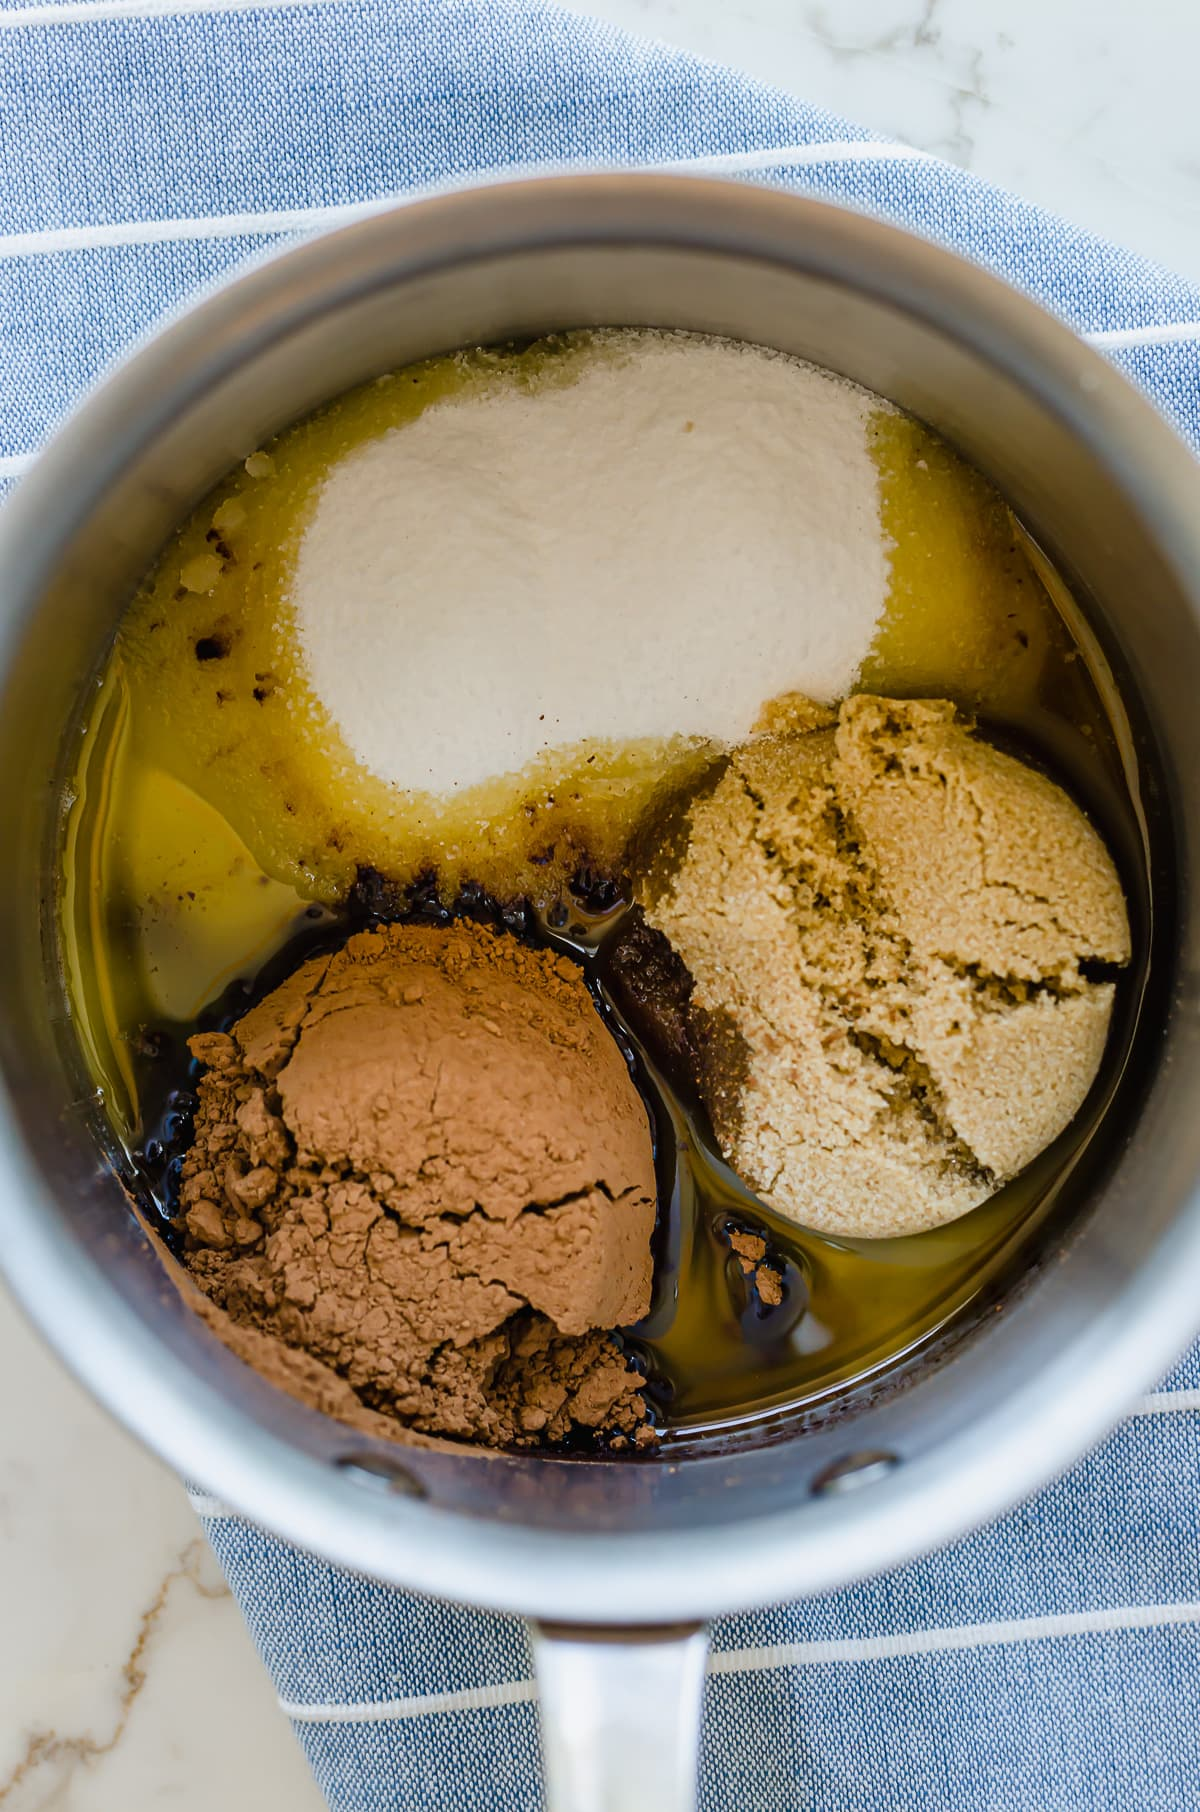 Sugars melting into butter in a saucepan.